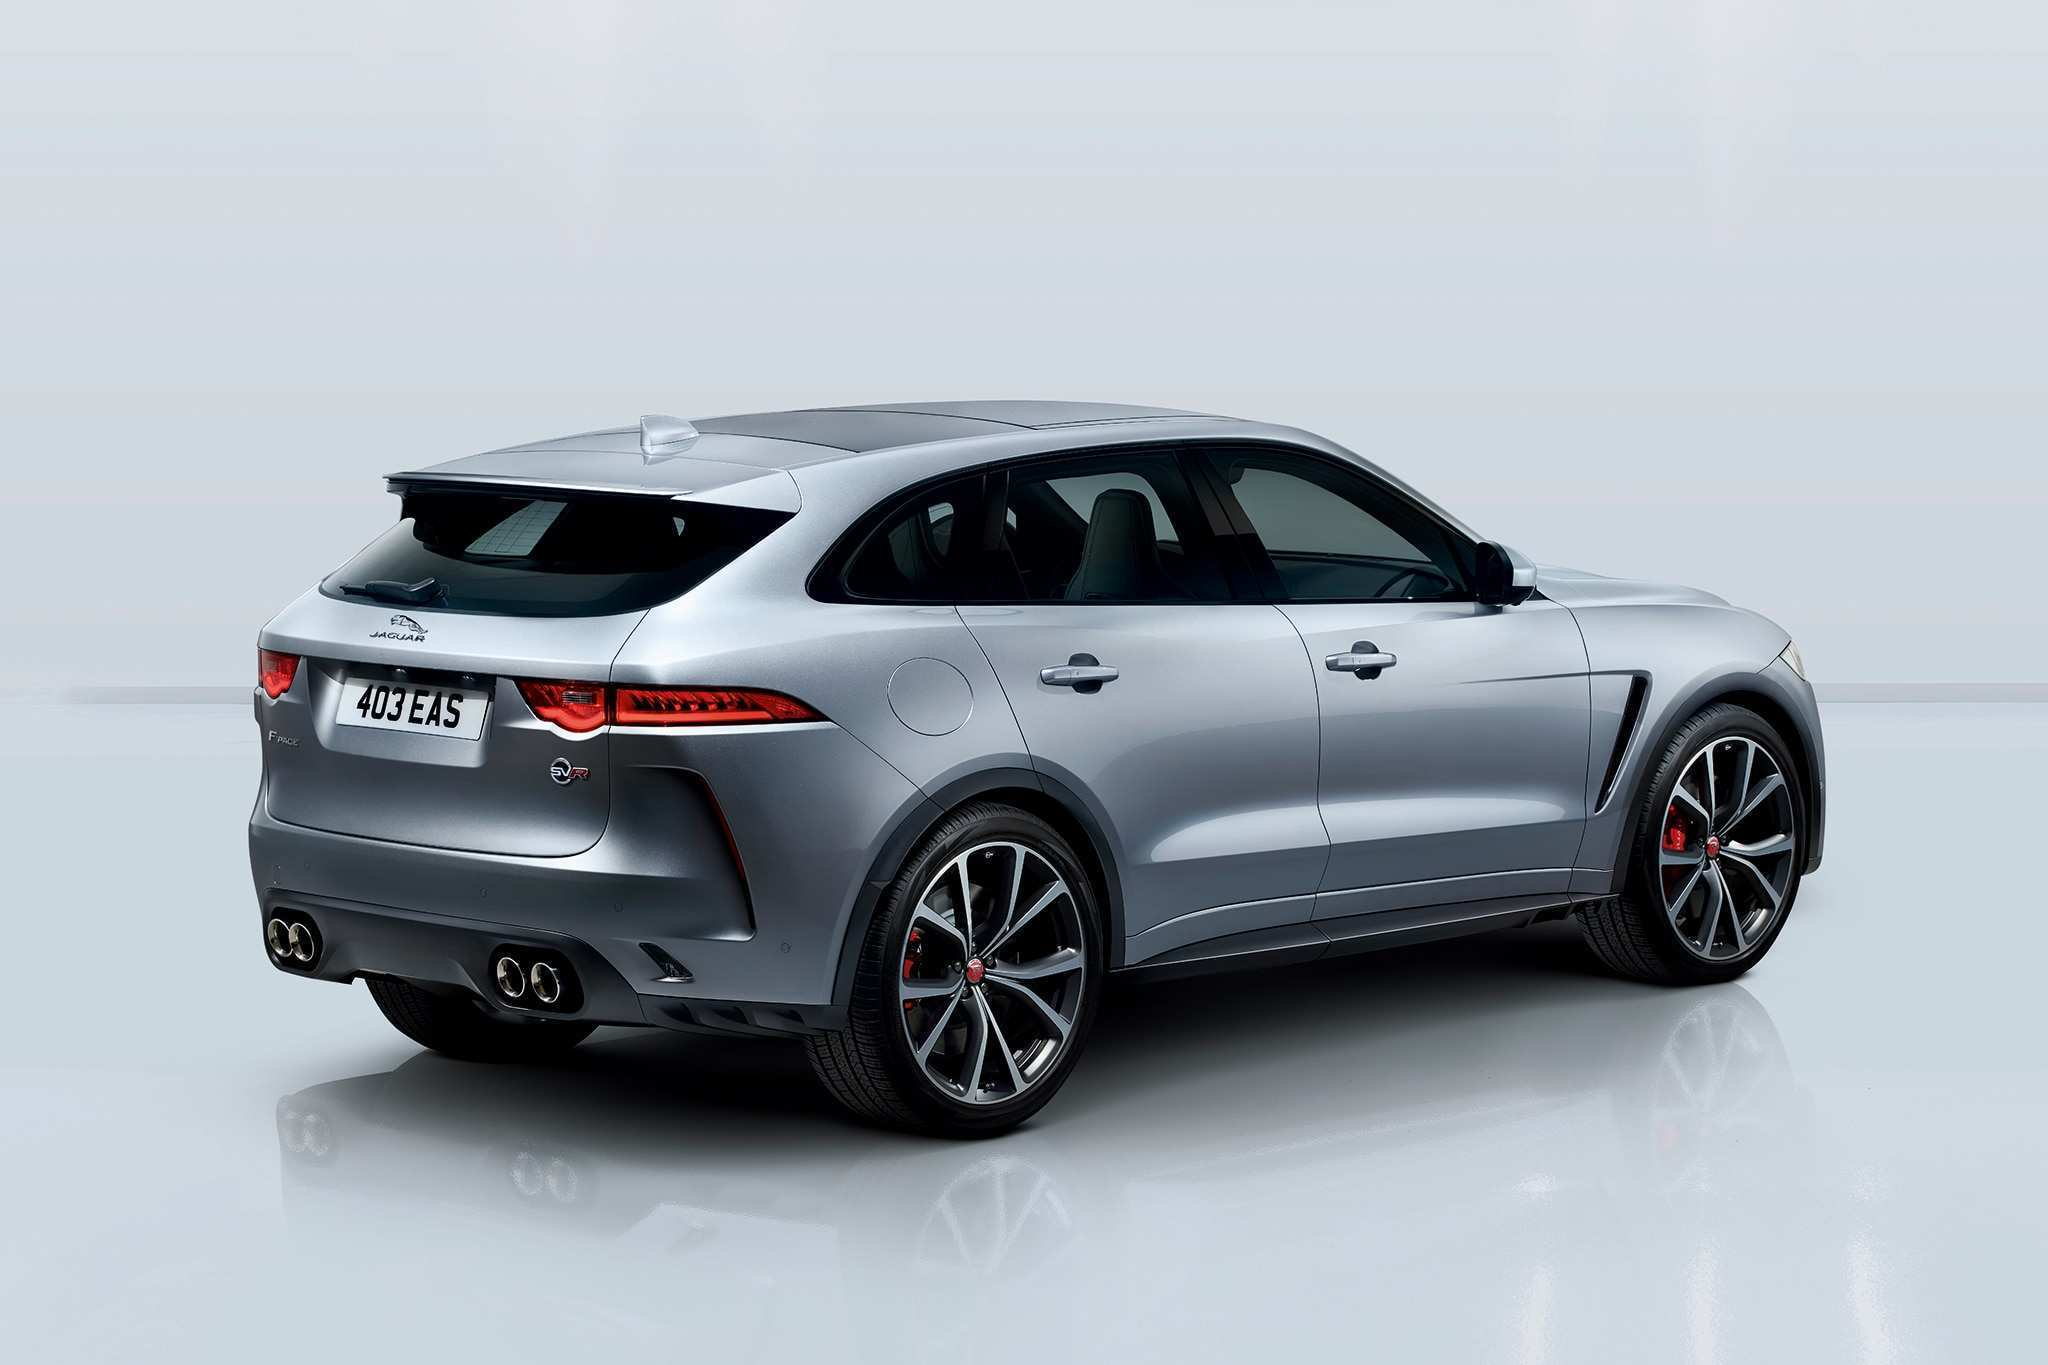 25 Gallery of 2019 Jaguar Suv Performance and New Engine for 2019 Jaguar Suv